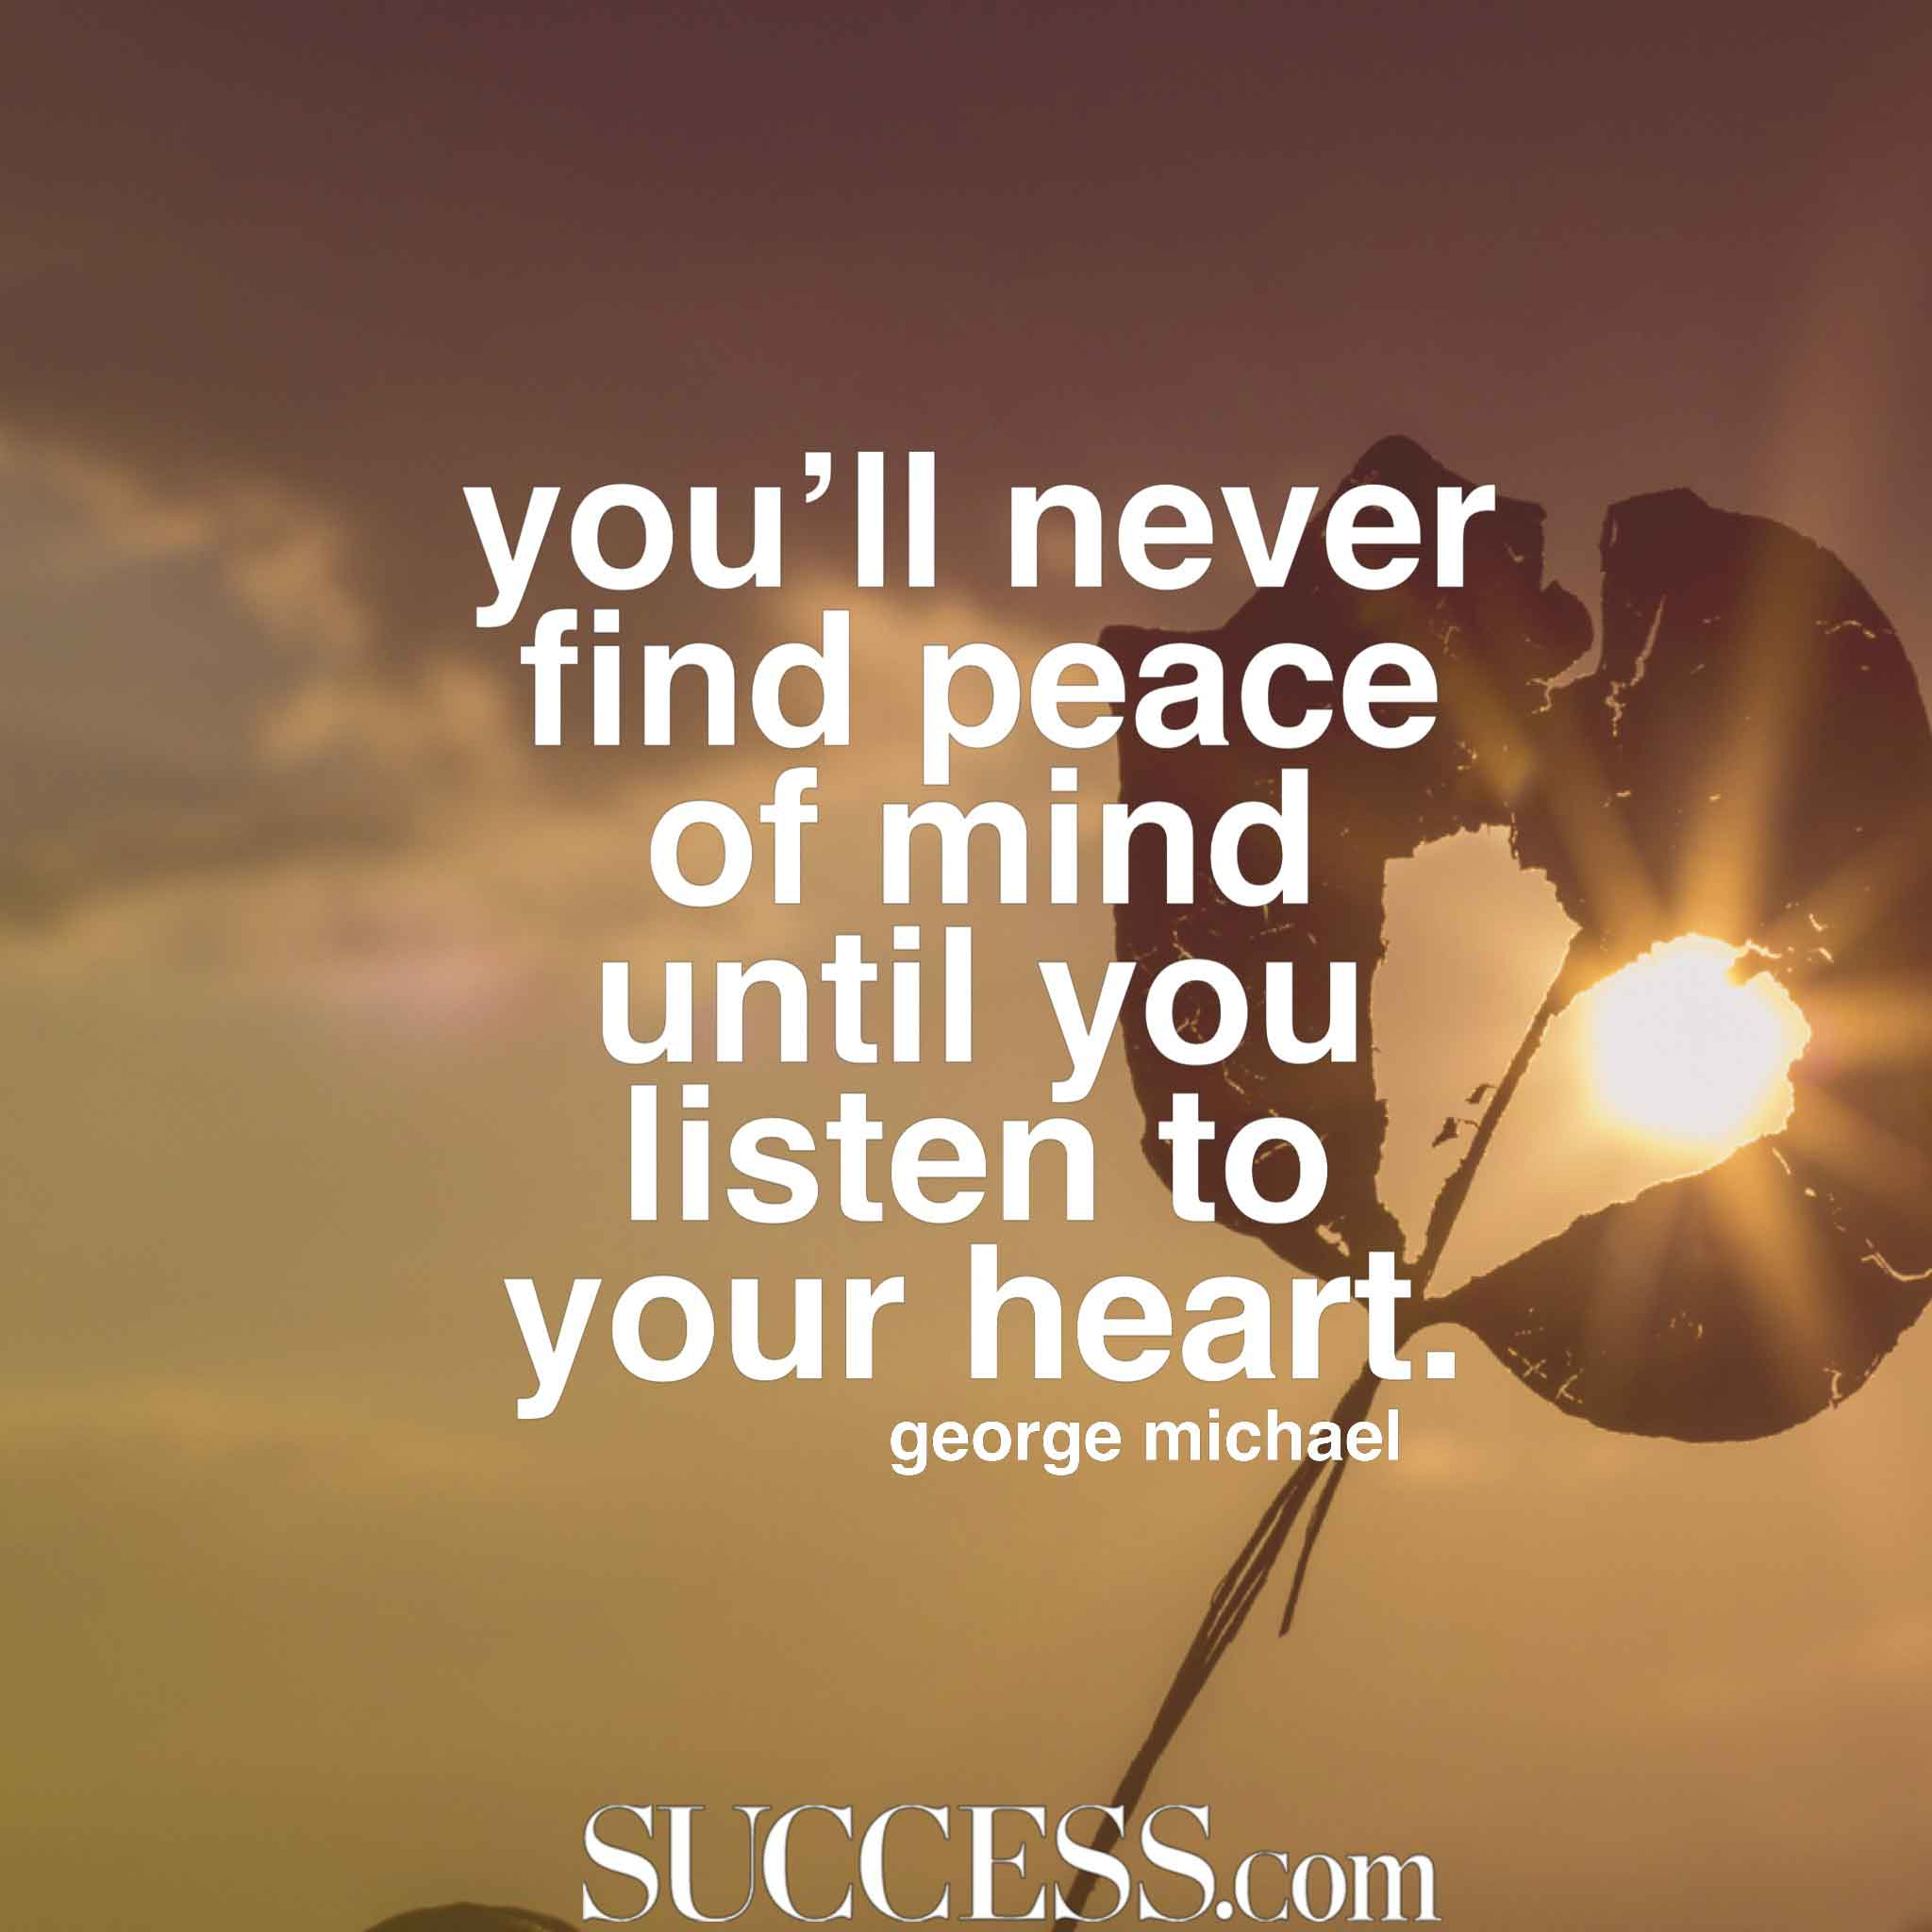 Peace Of Mind Quotes: 17 Quotes About Finding Inner Peace